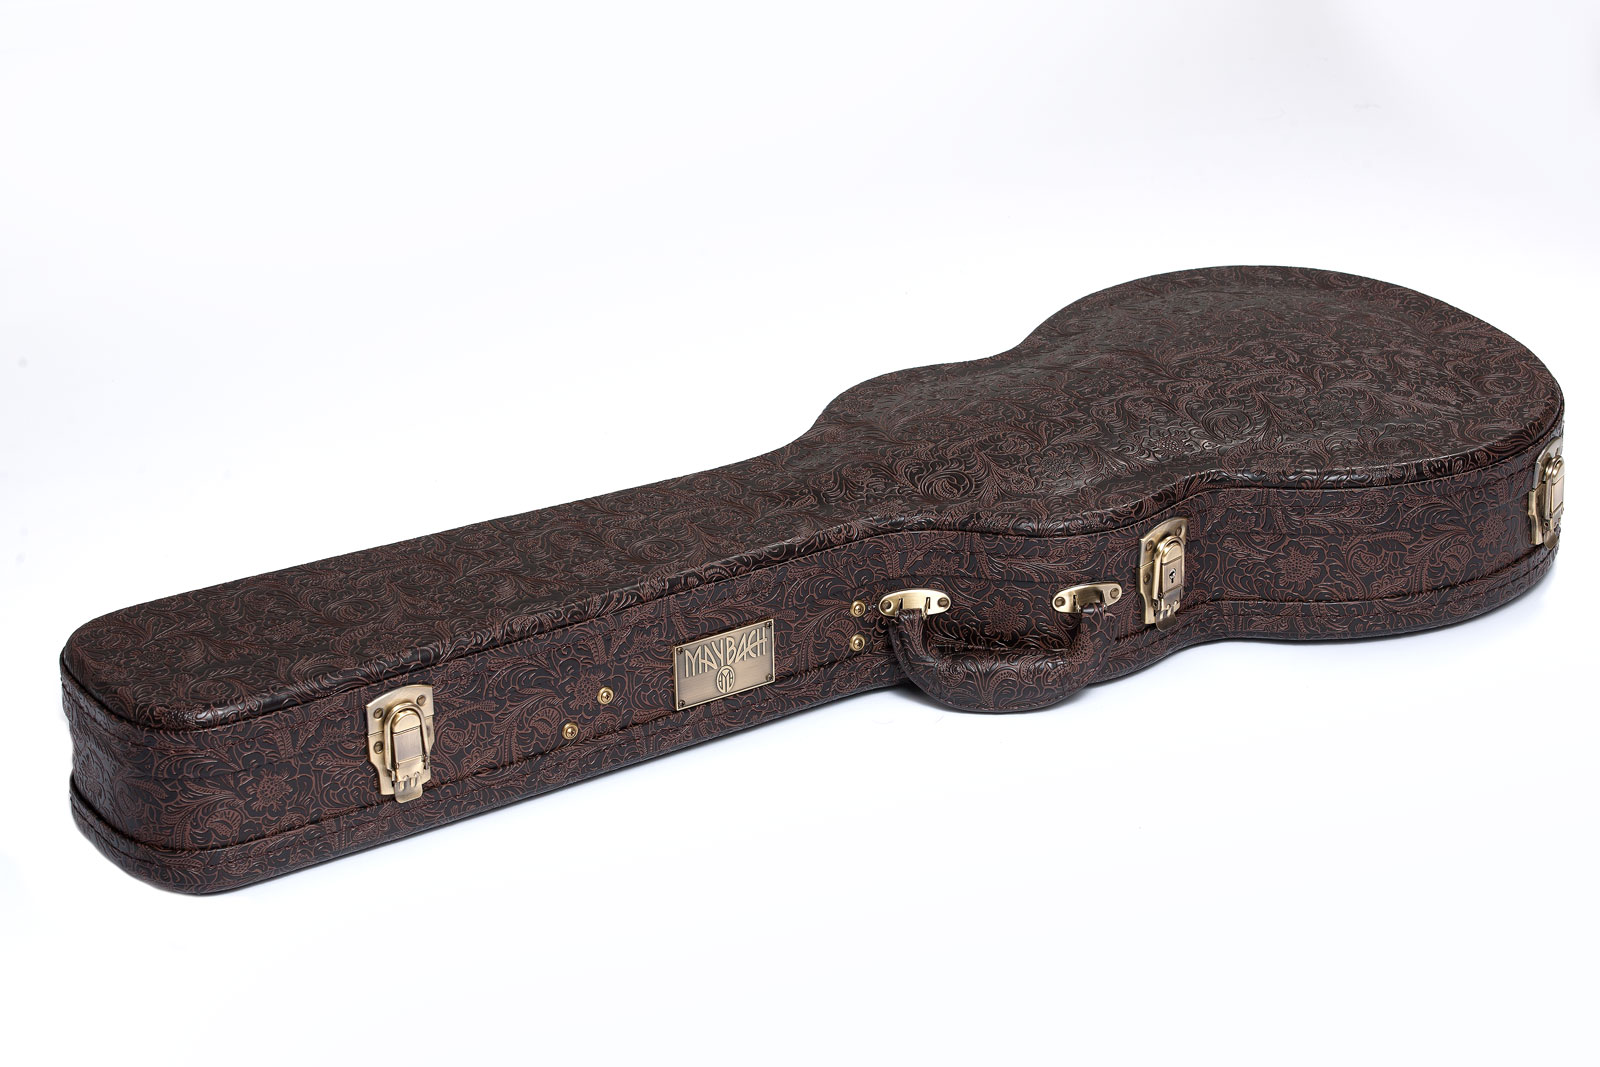 Maybach Luxus Etui Lester Guitar Buy Online Free